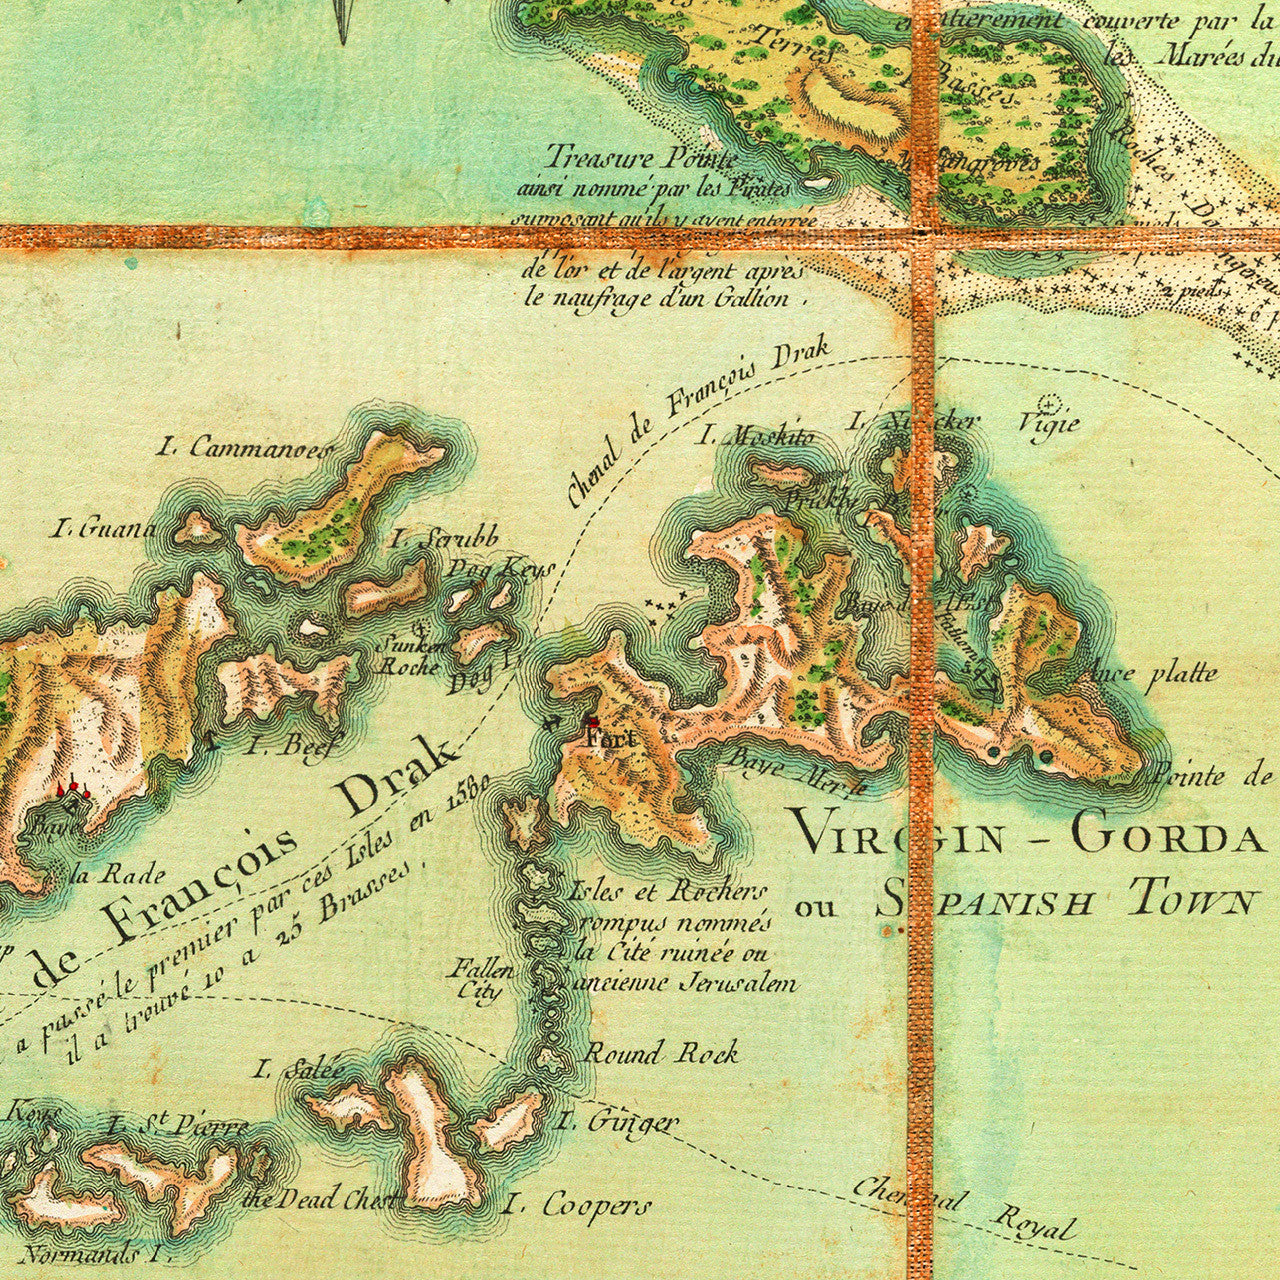 Map of the virgin islands 1779 les vierges bvi usvi caribbean 1779 virgin islands les vierges bvi usvi old map sciox Image collections